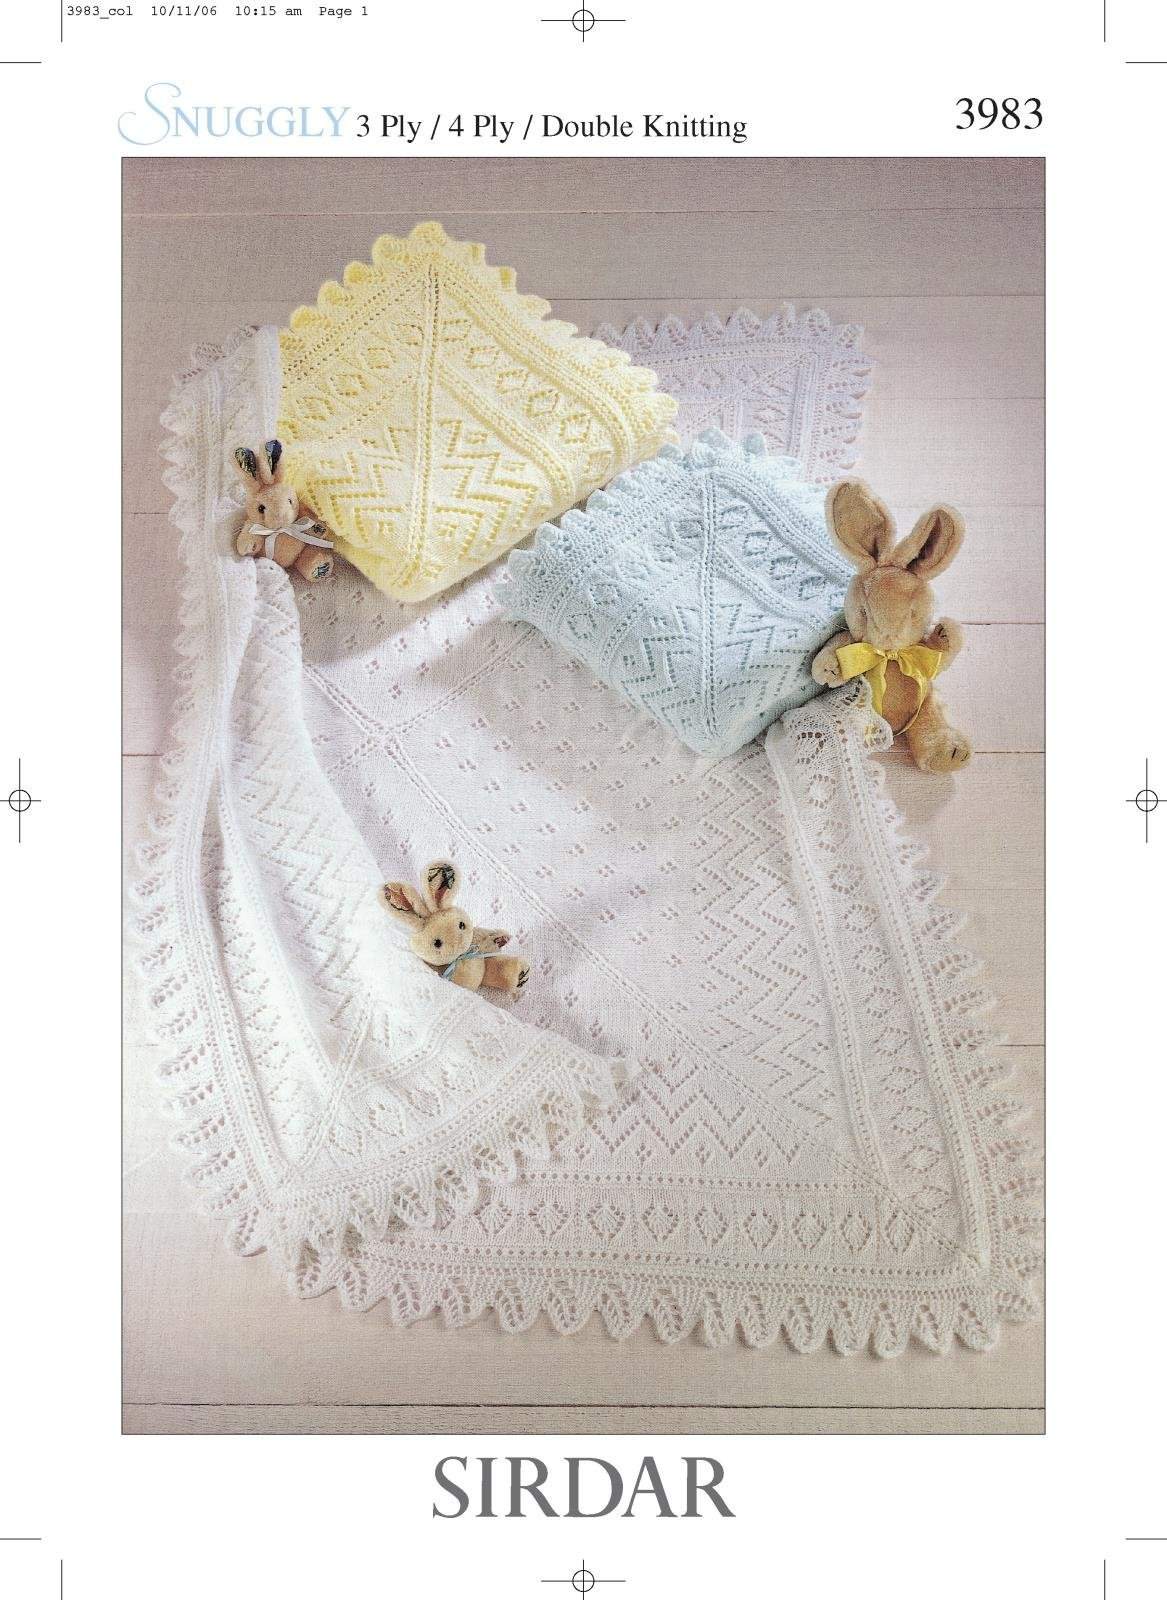 4PLY Knitting Pattern for Baby: Amazon.co.uk